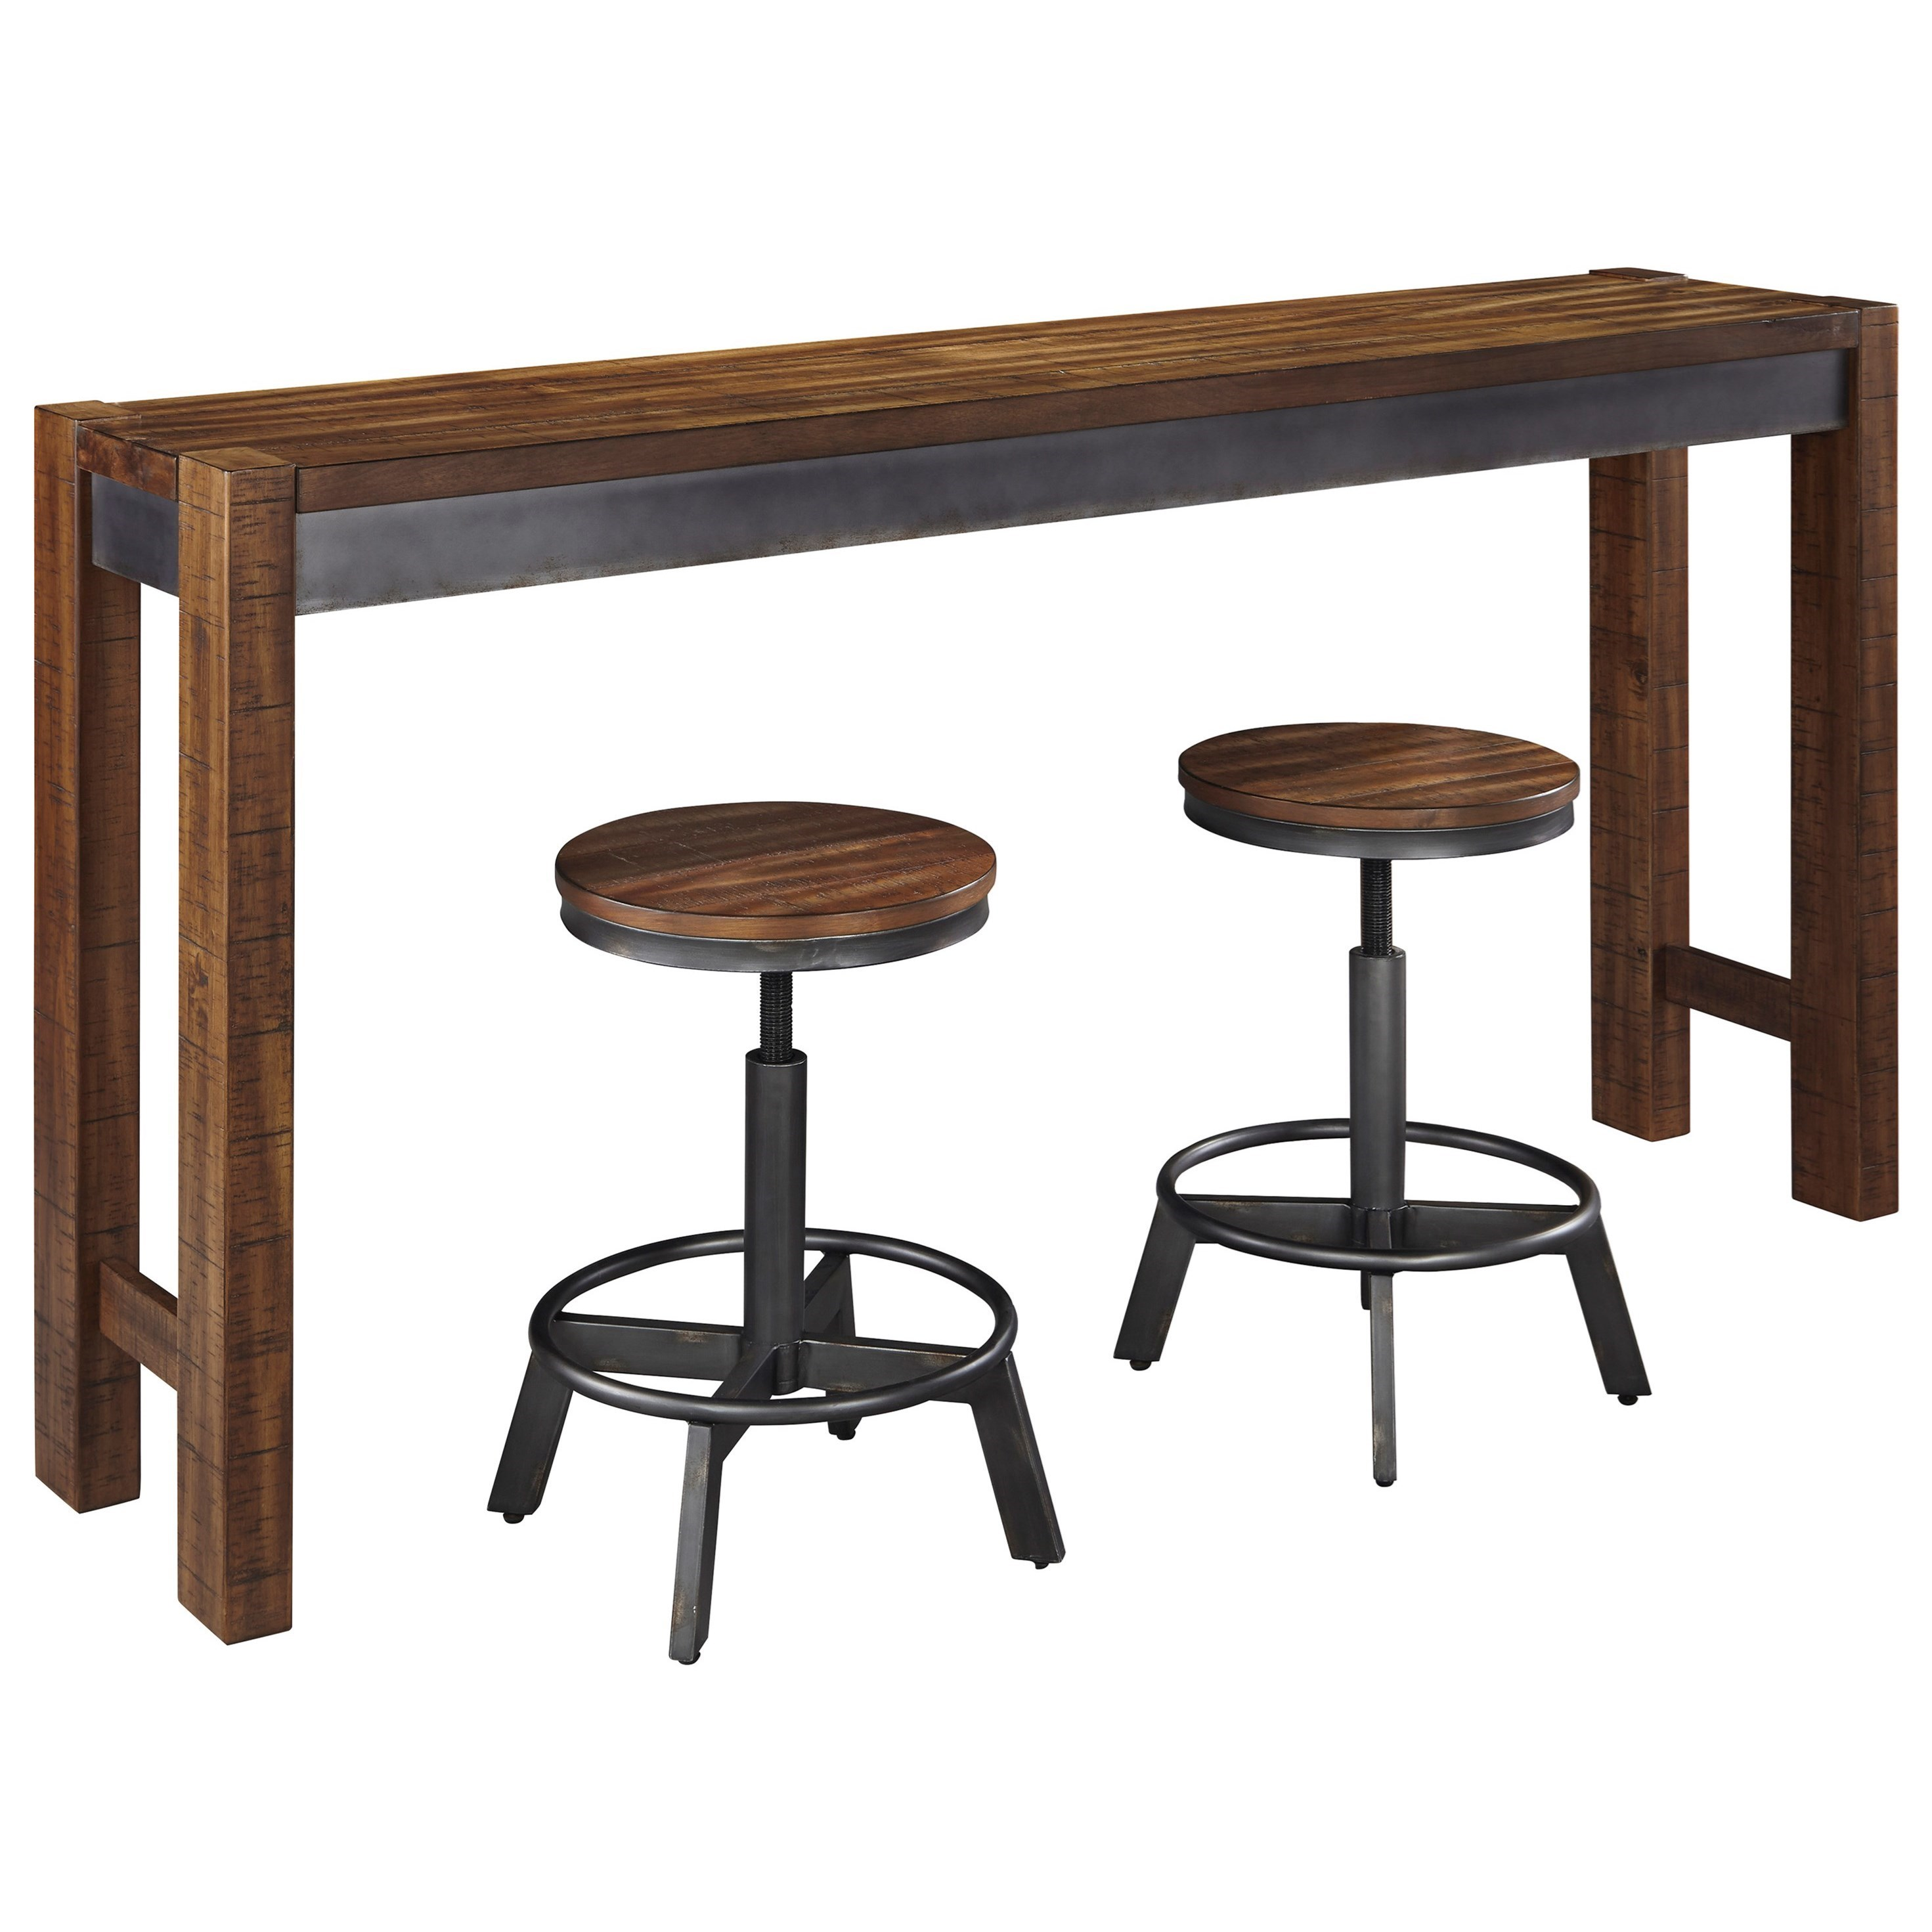 Signature Design By Ashley Torjin 3 Piece Rustic Long Counter Table Set   John  V Schultz Furniture   Pub Table And Stool Sets